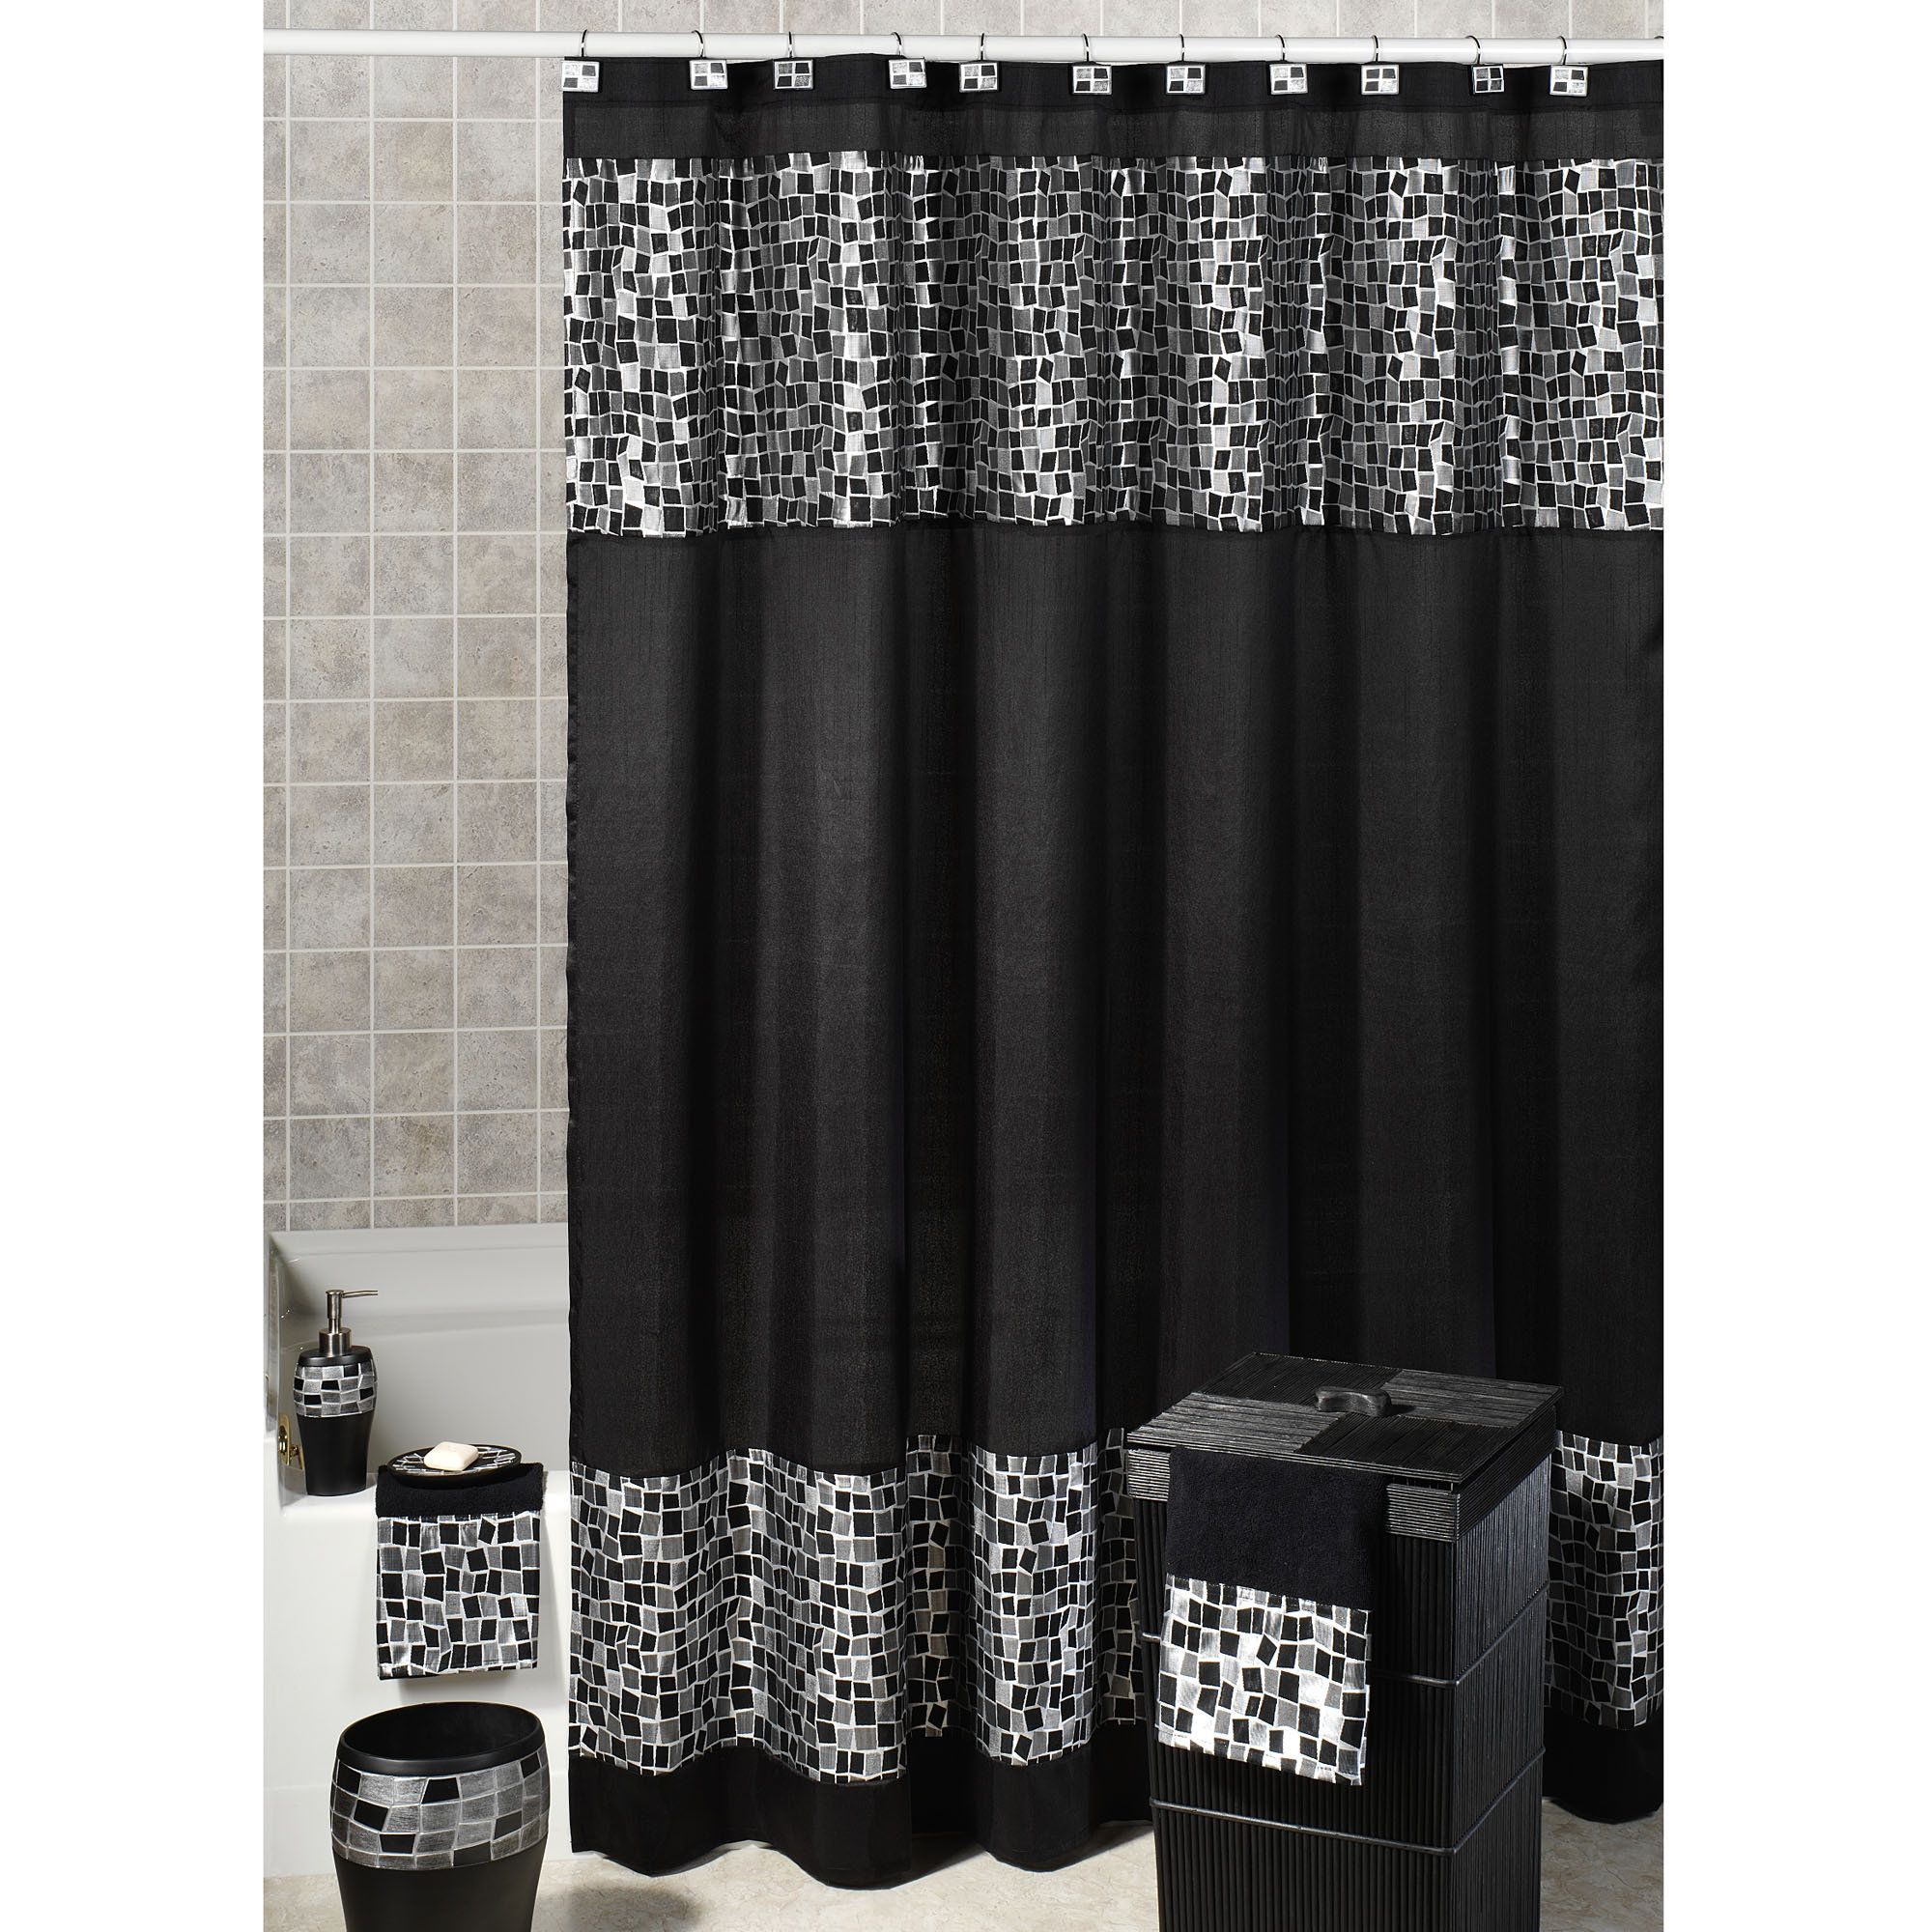 Awesome Black Mosaic Shower Curtain Design Ideas Cute ...